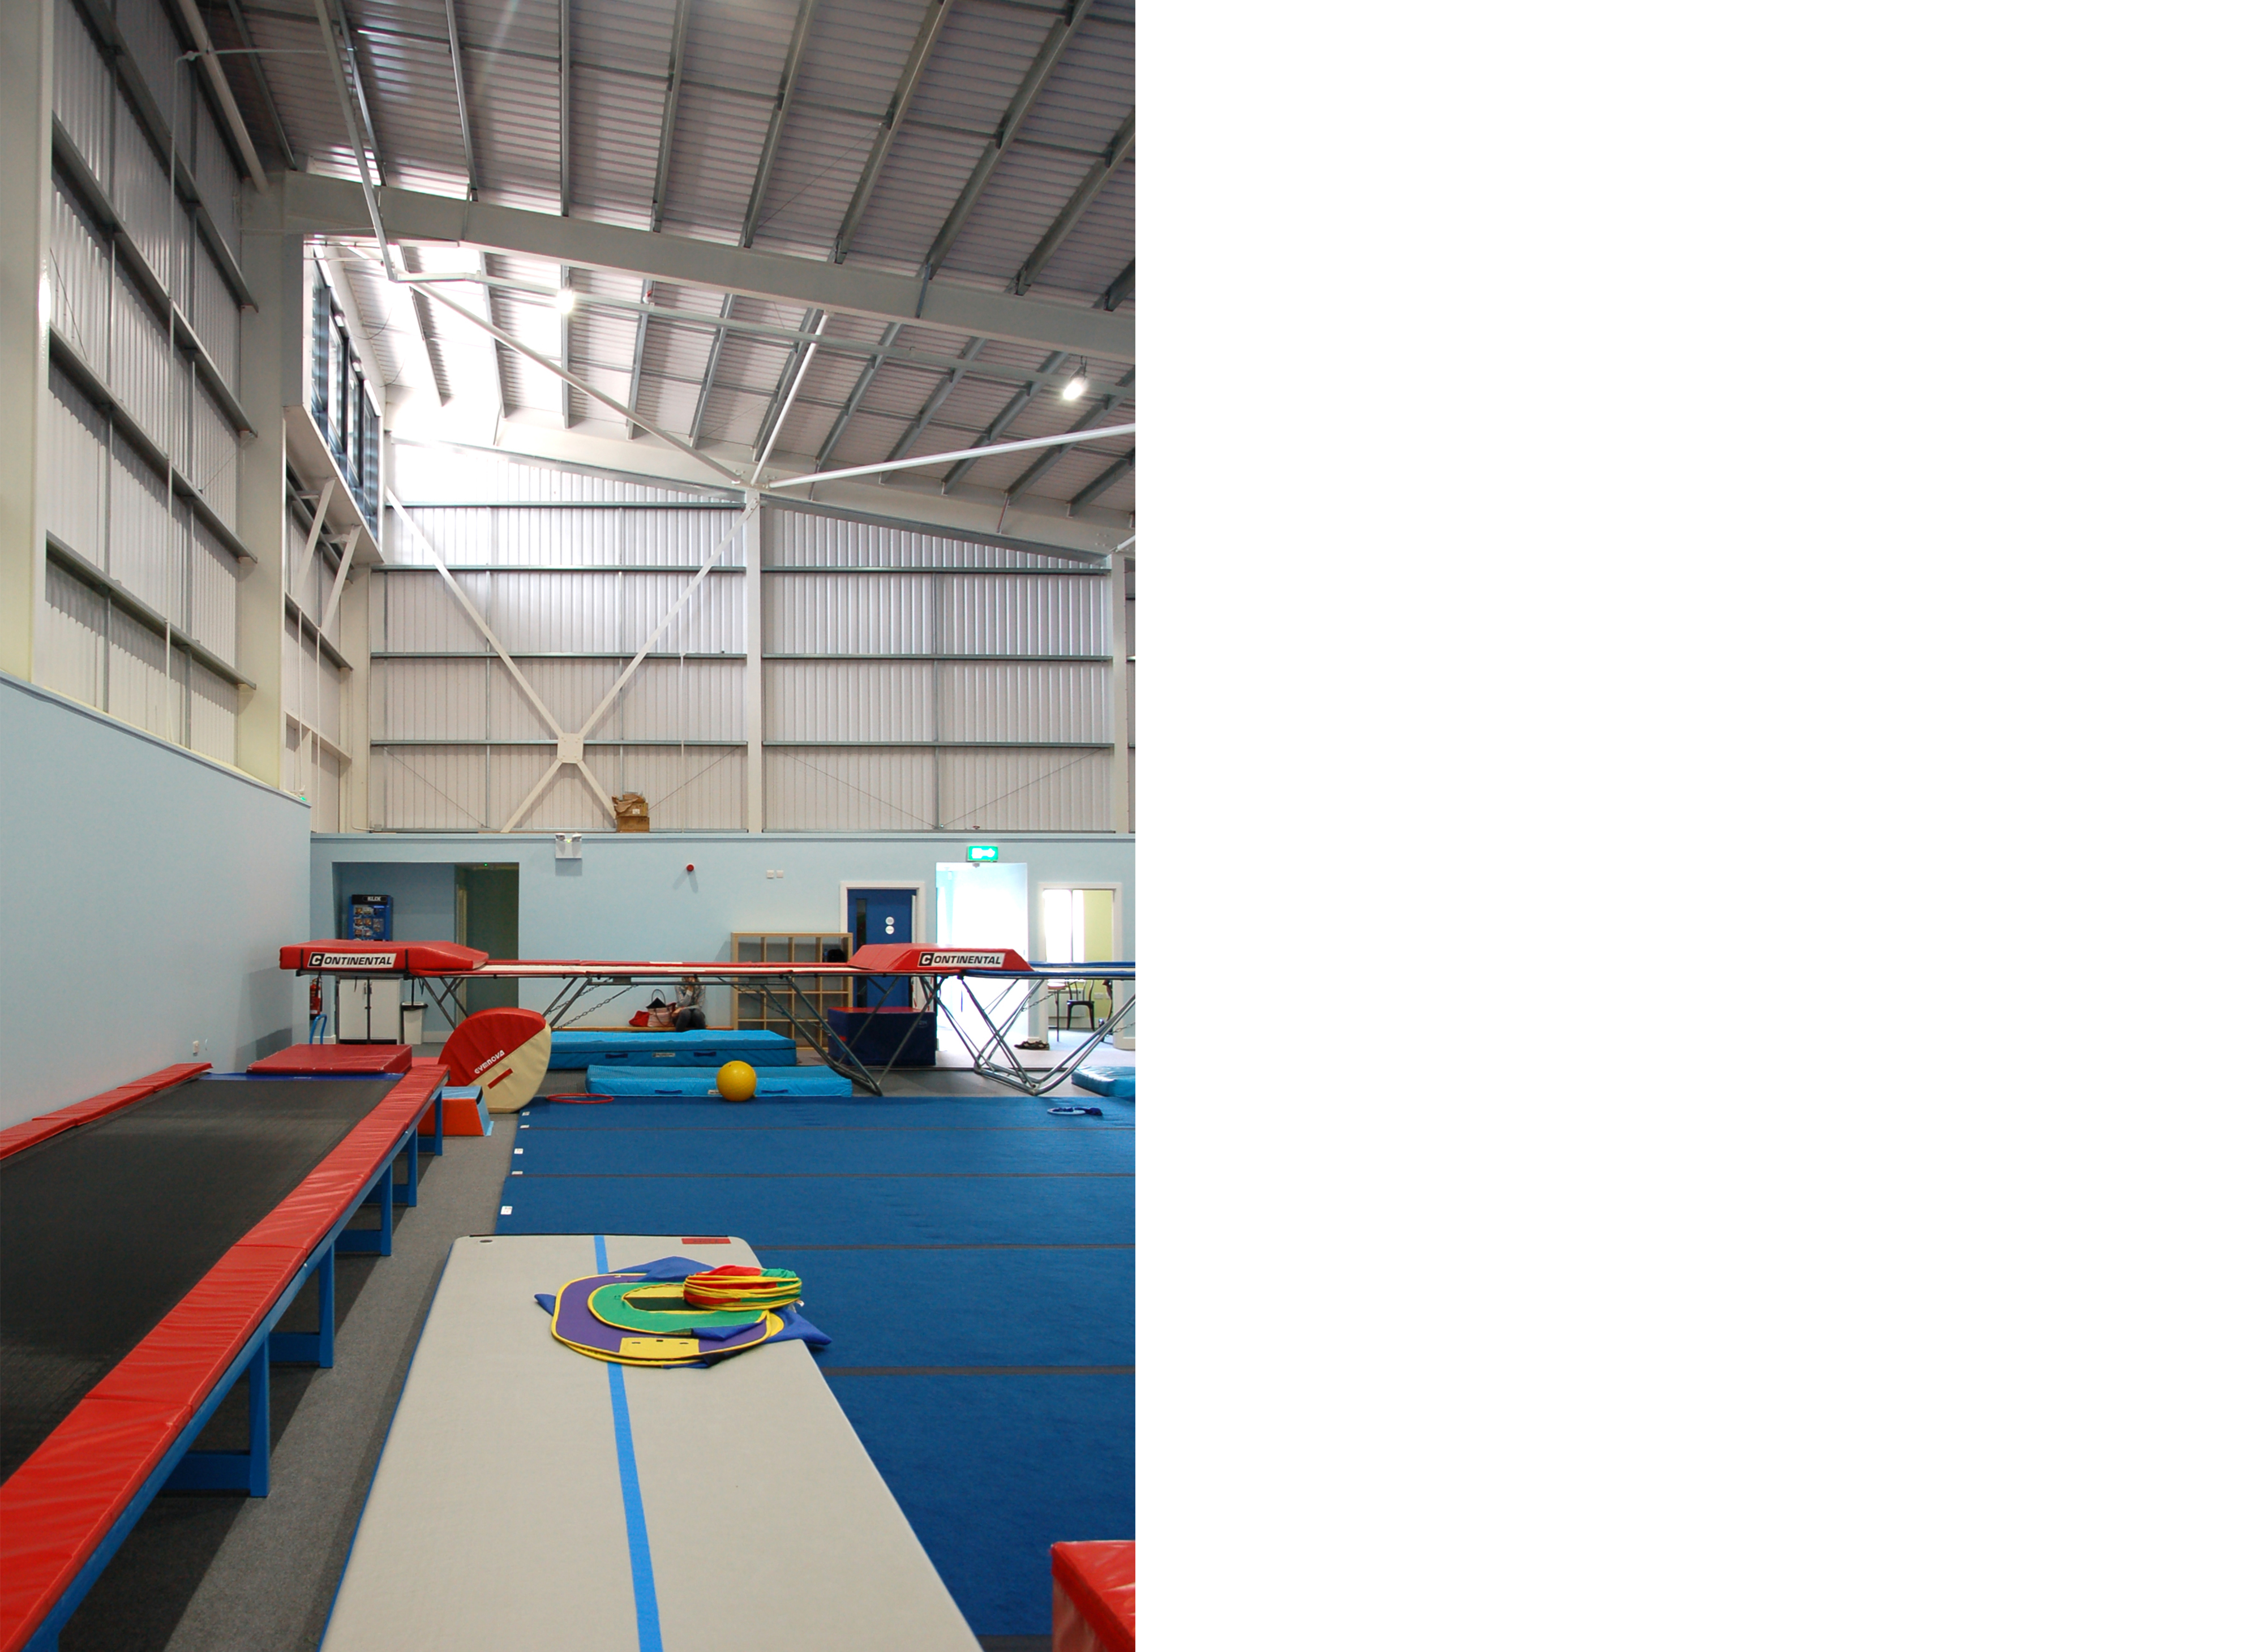 Wiltshire school of gymnastics_05.jpg